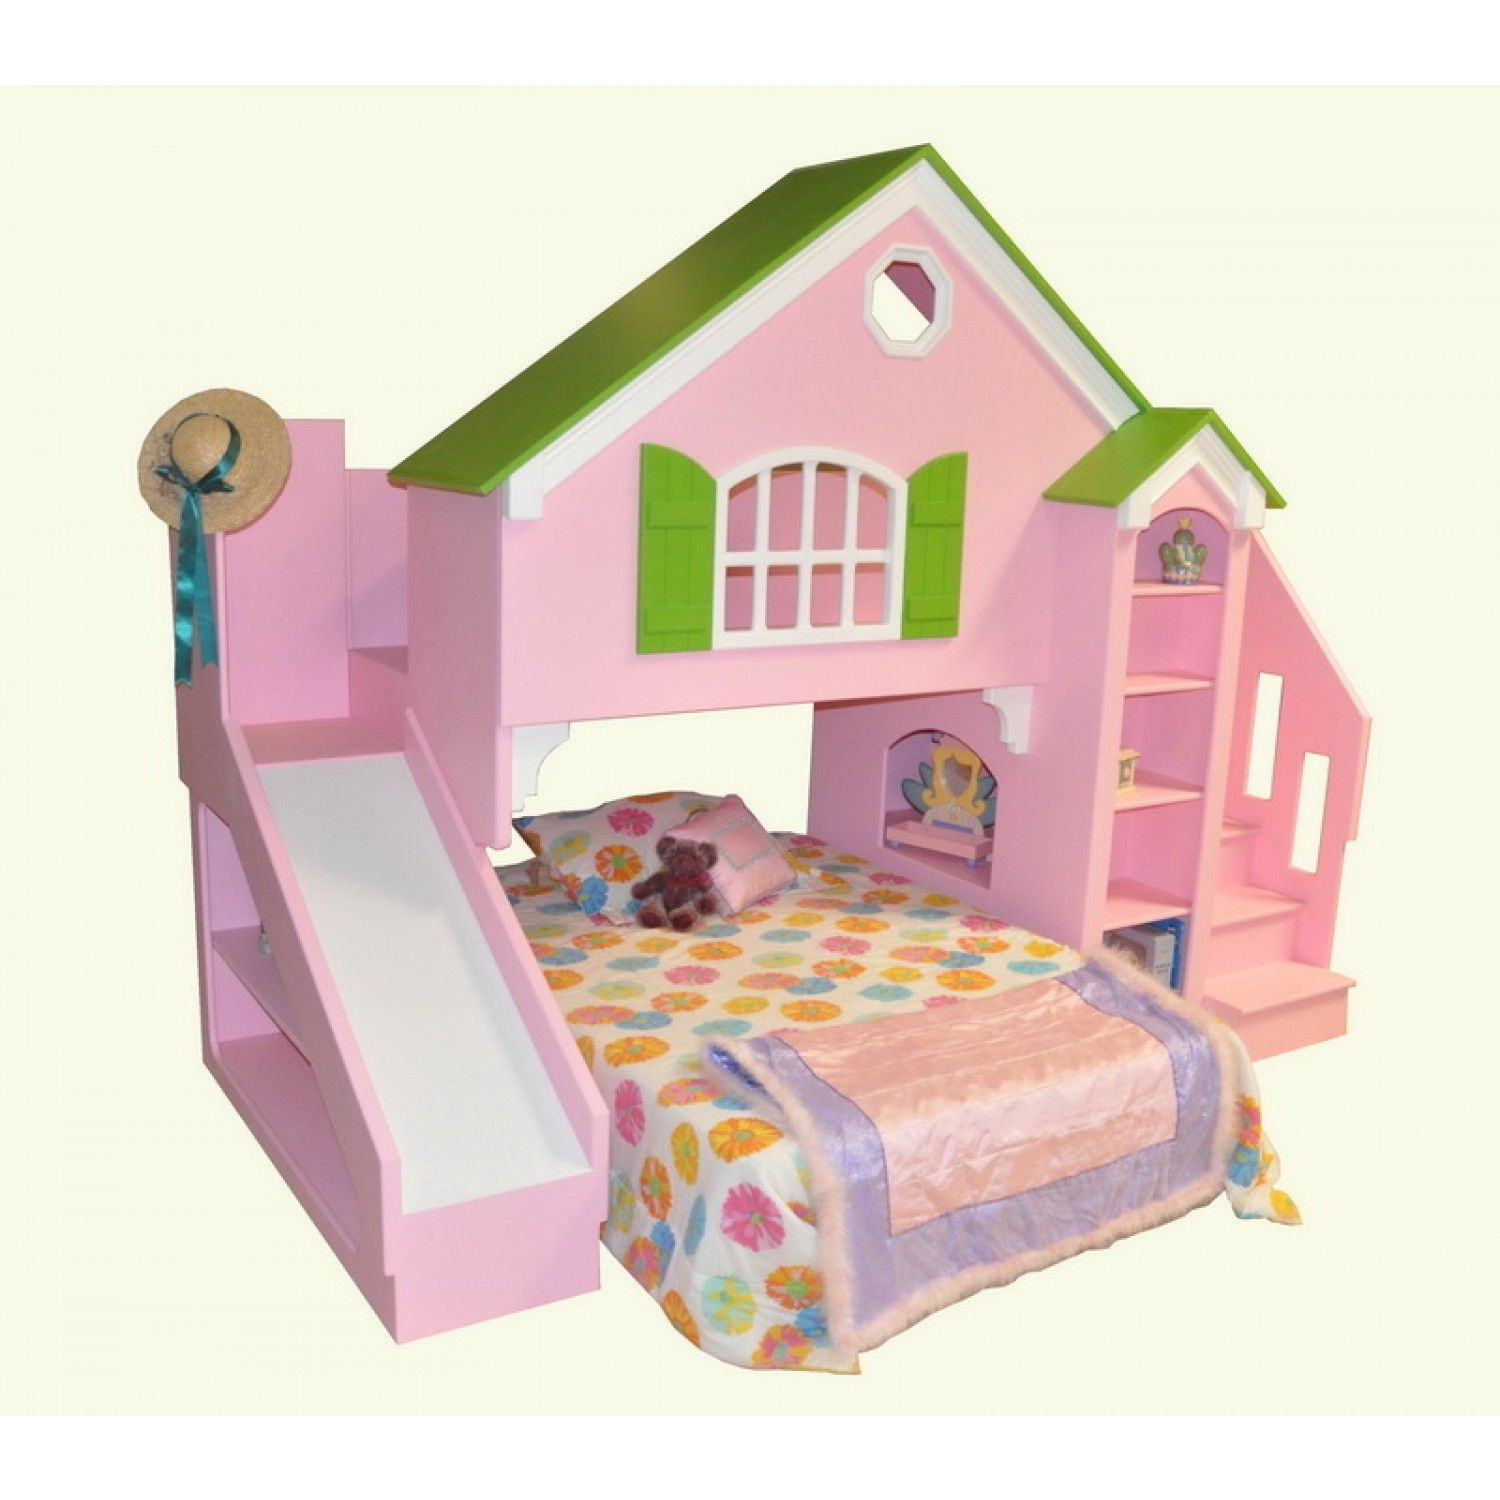 Bed Designs For Girl Tanglewood Design Dollhouse Bed Plans With Optional Slide